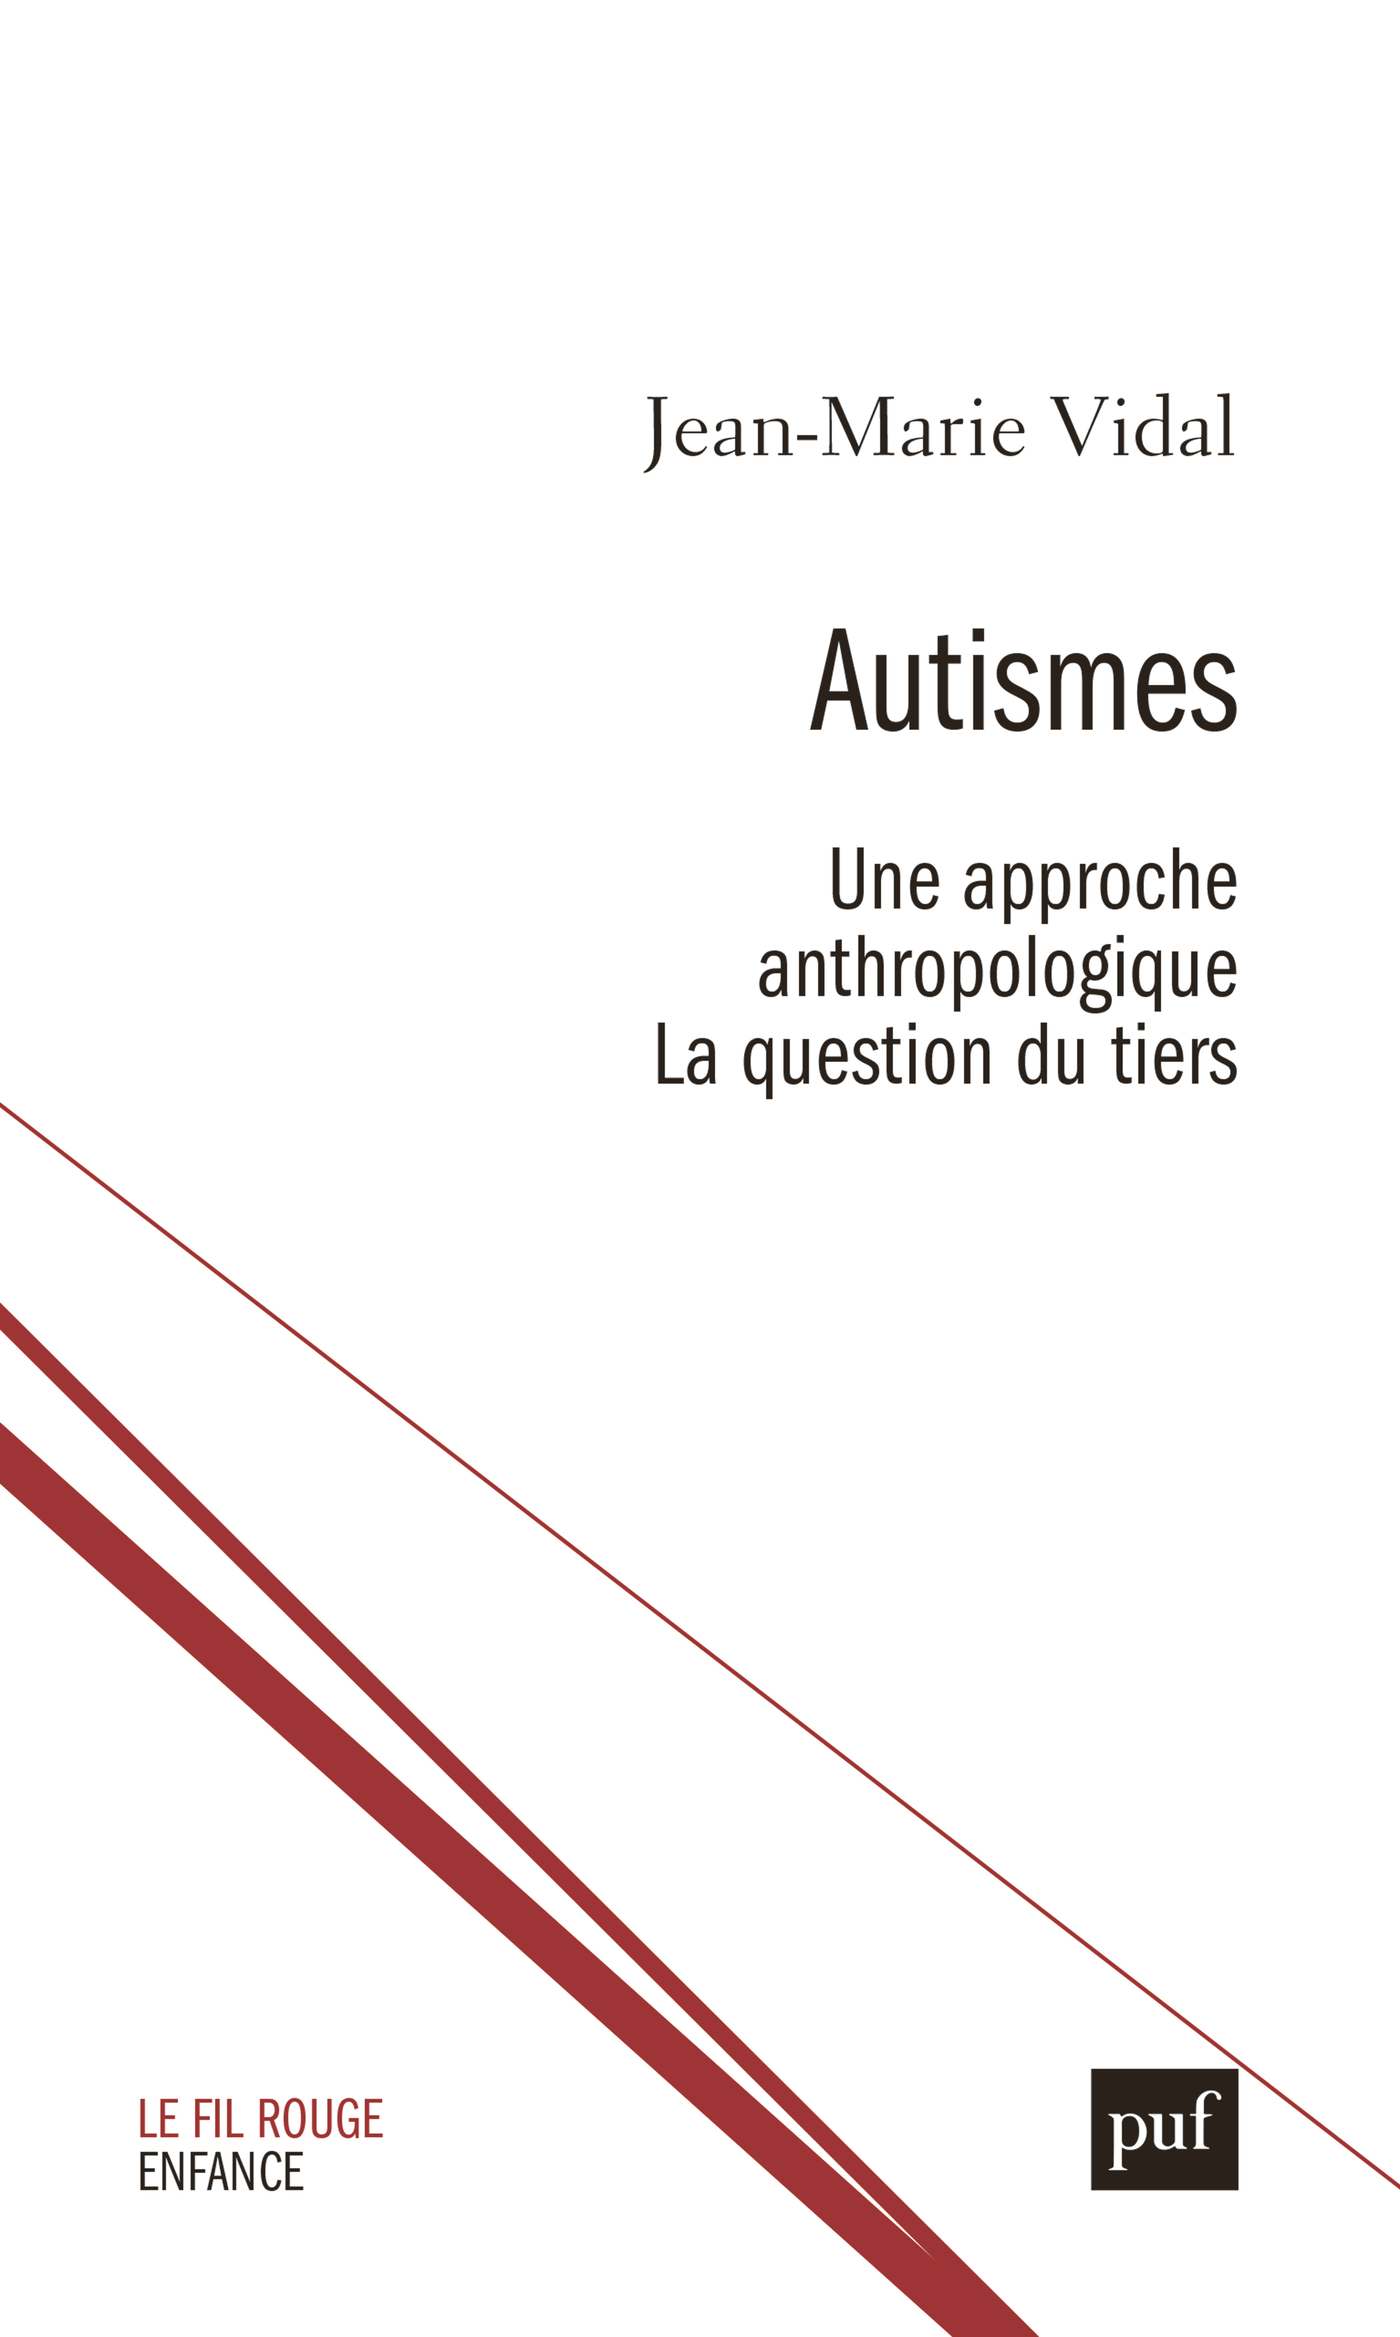 Autismes. Une approche anthropologique De Jean-Marie Vidal - Presses Universitaires de France